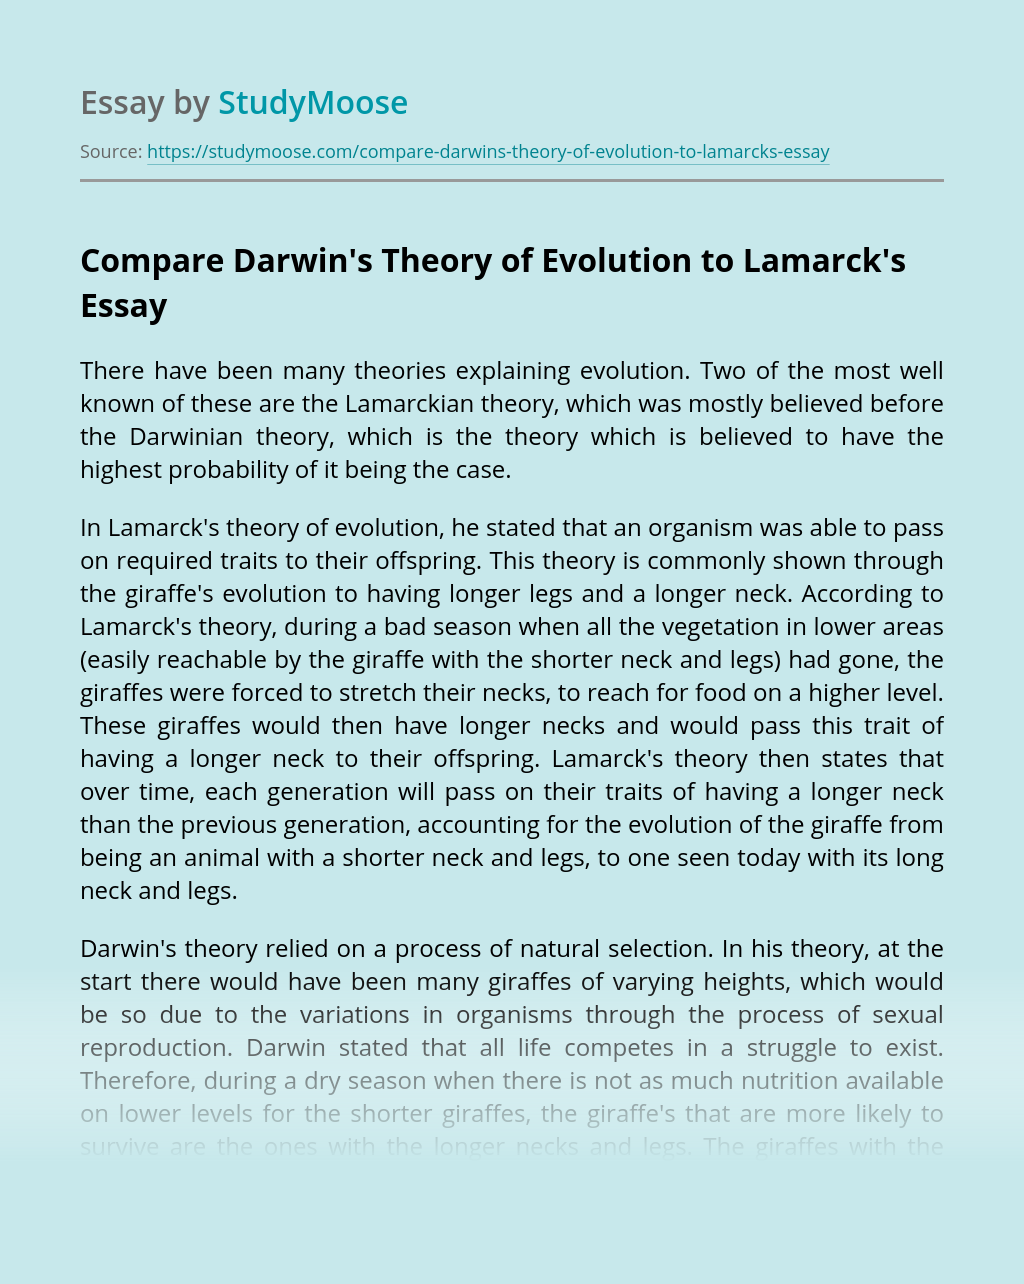 Compare Darwin's Theory of Evolution to Lamarck's